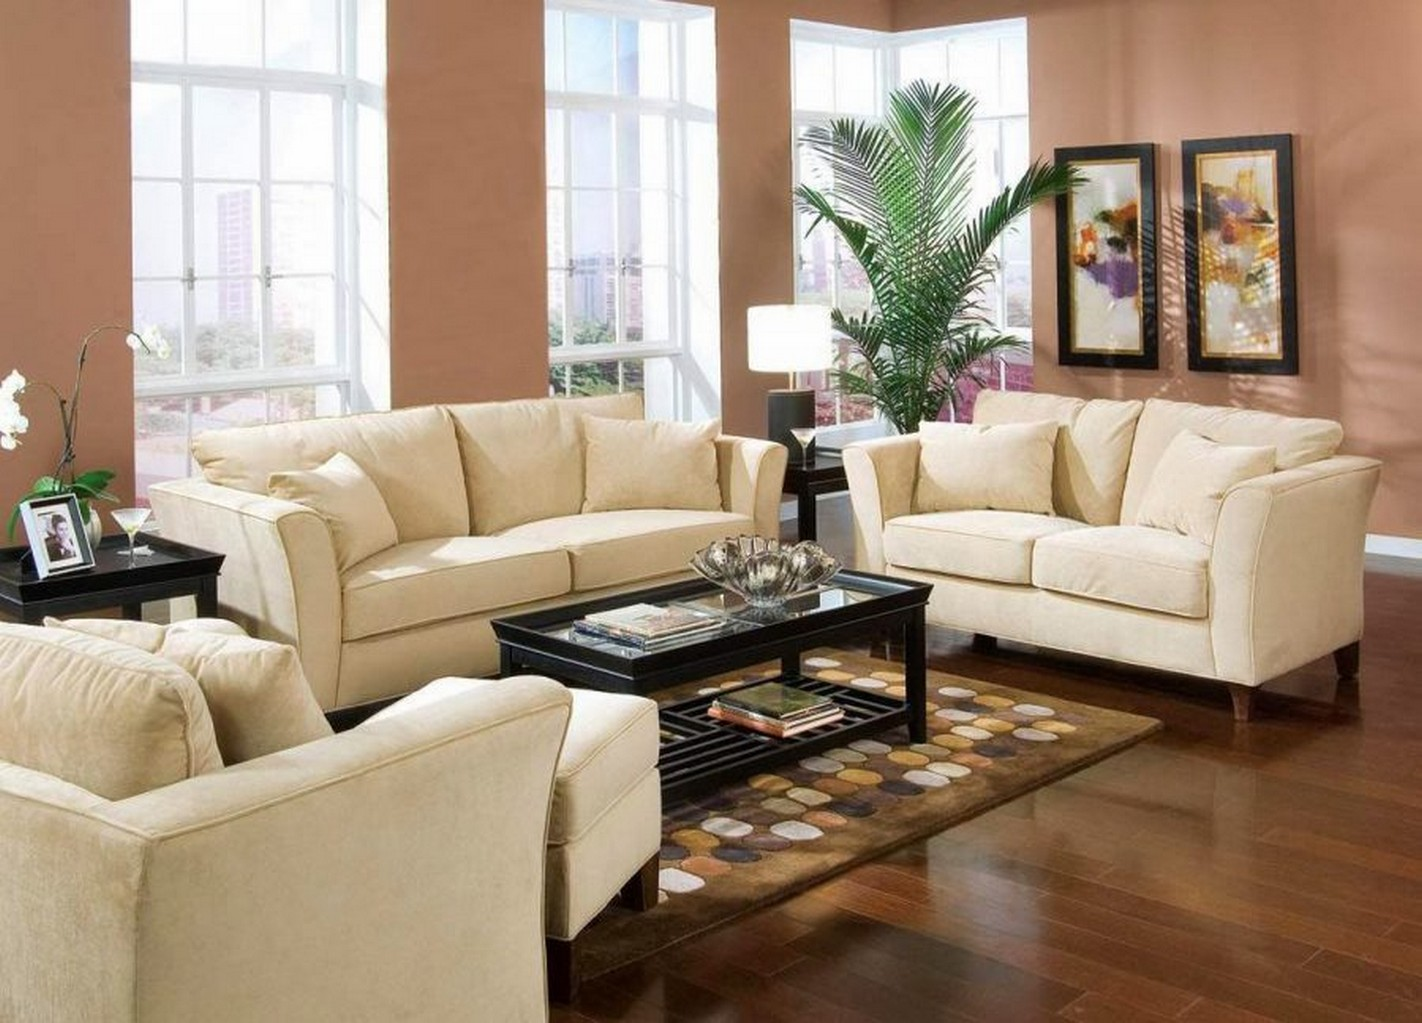 Small living room furniture ideas felish home project Small family room ideas